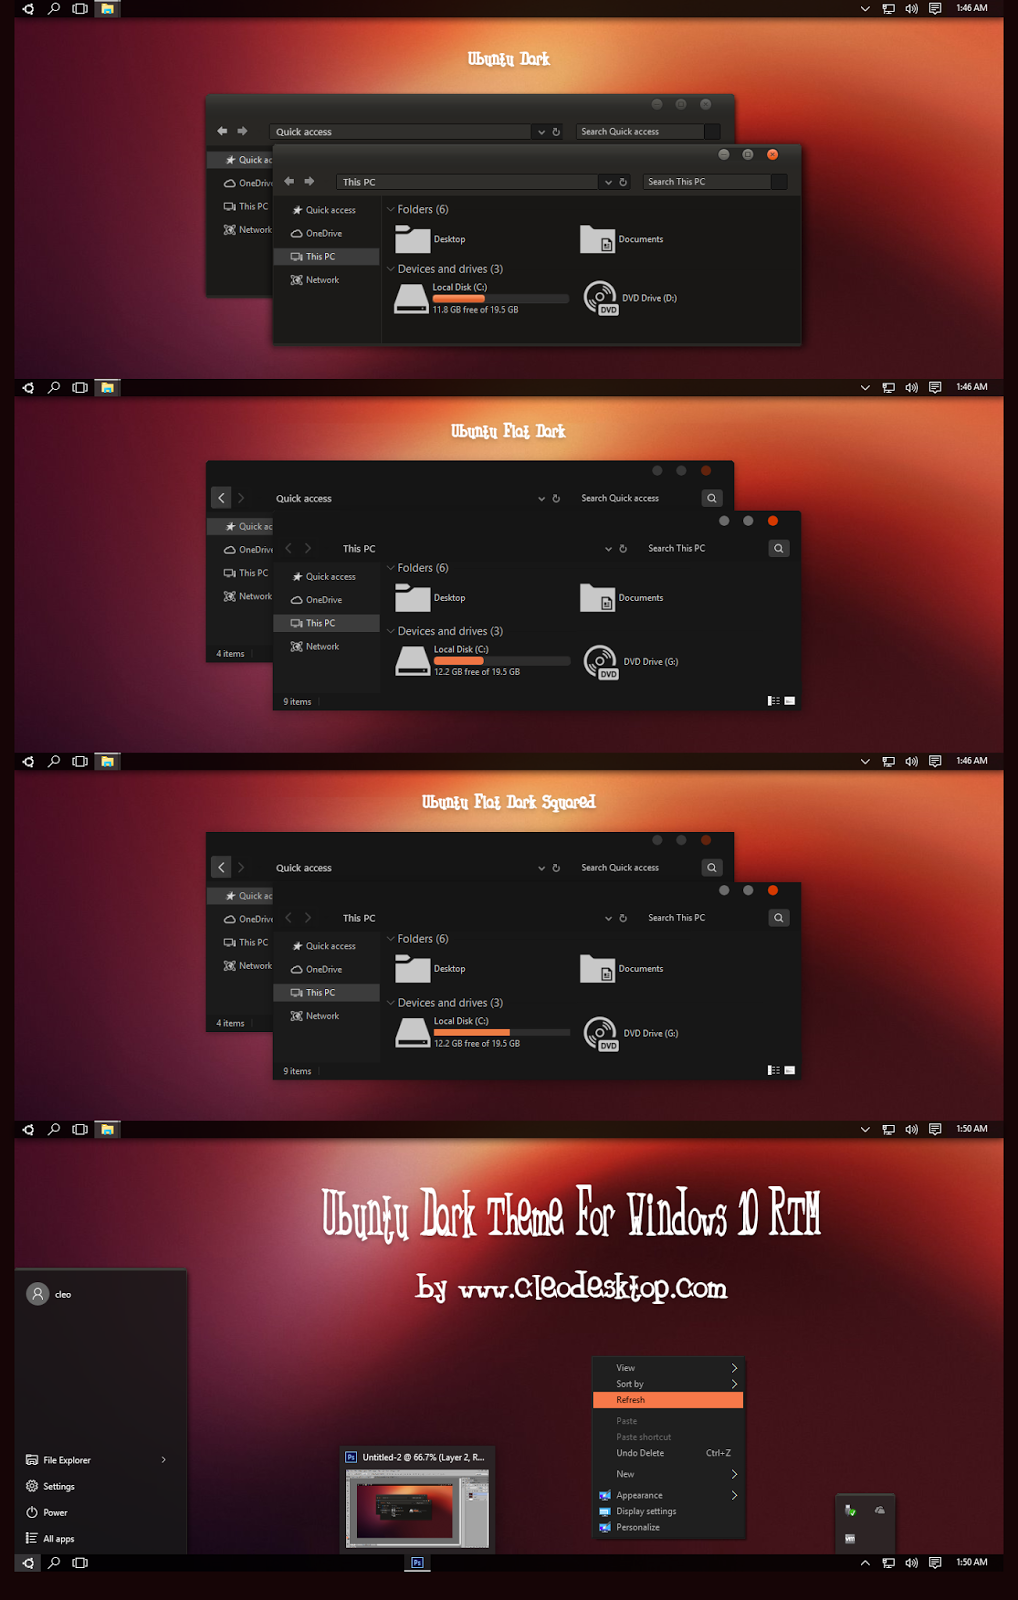 Cleodesktop Ubuntu Dark Theme For Windows 10 RTM